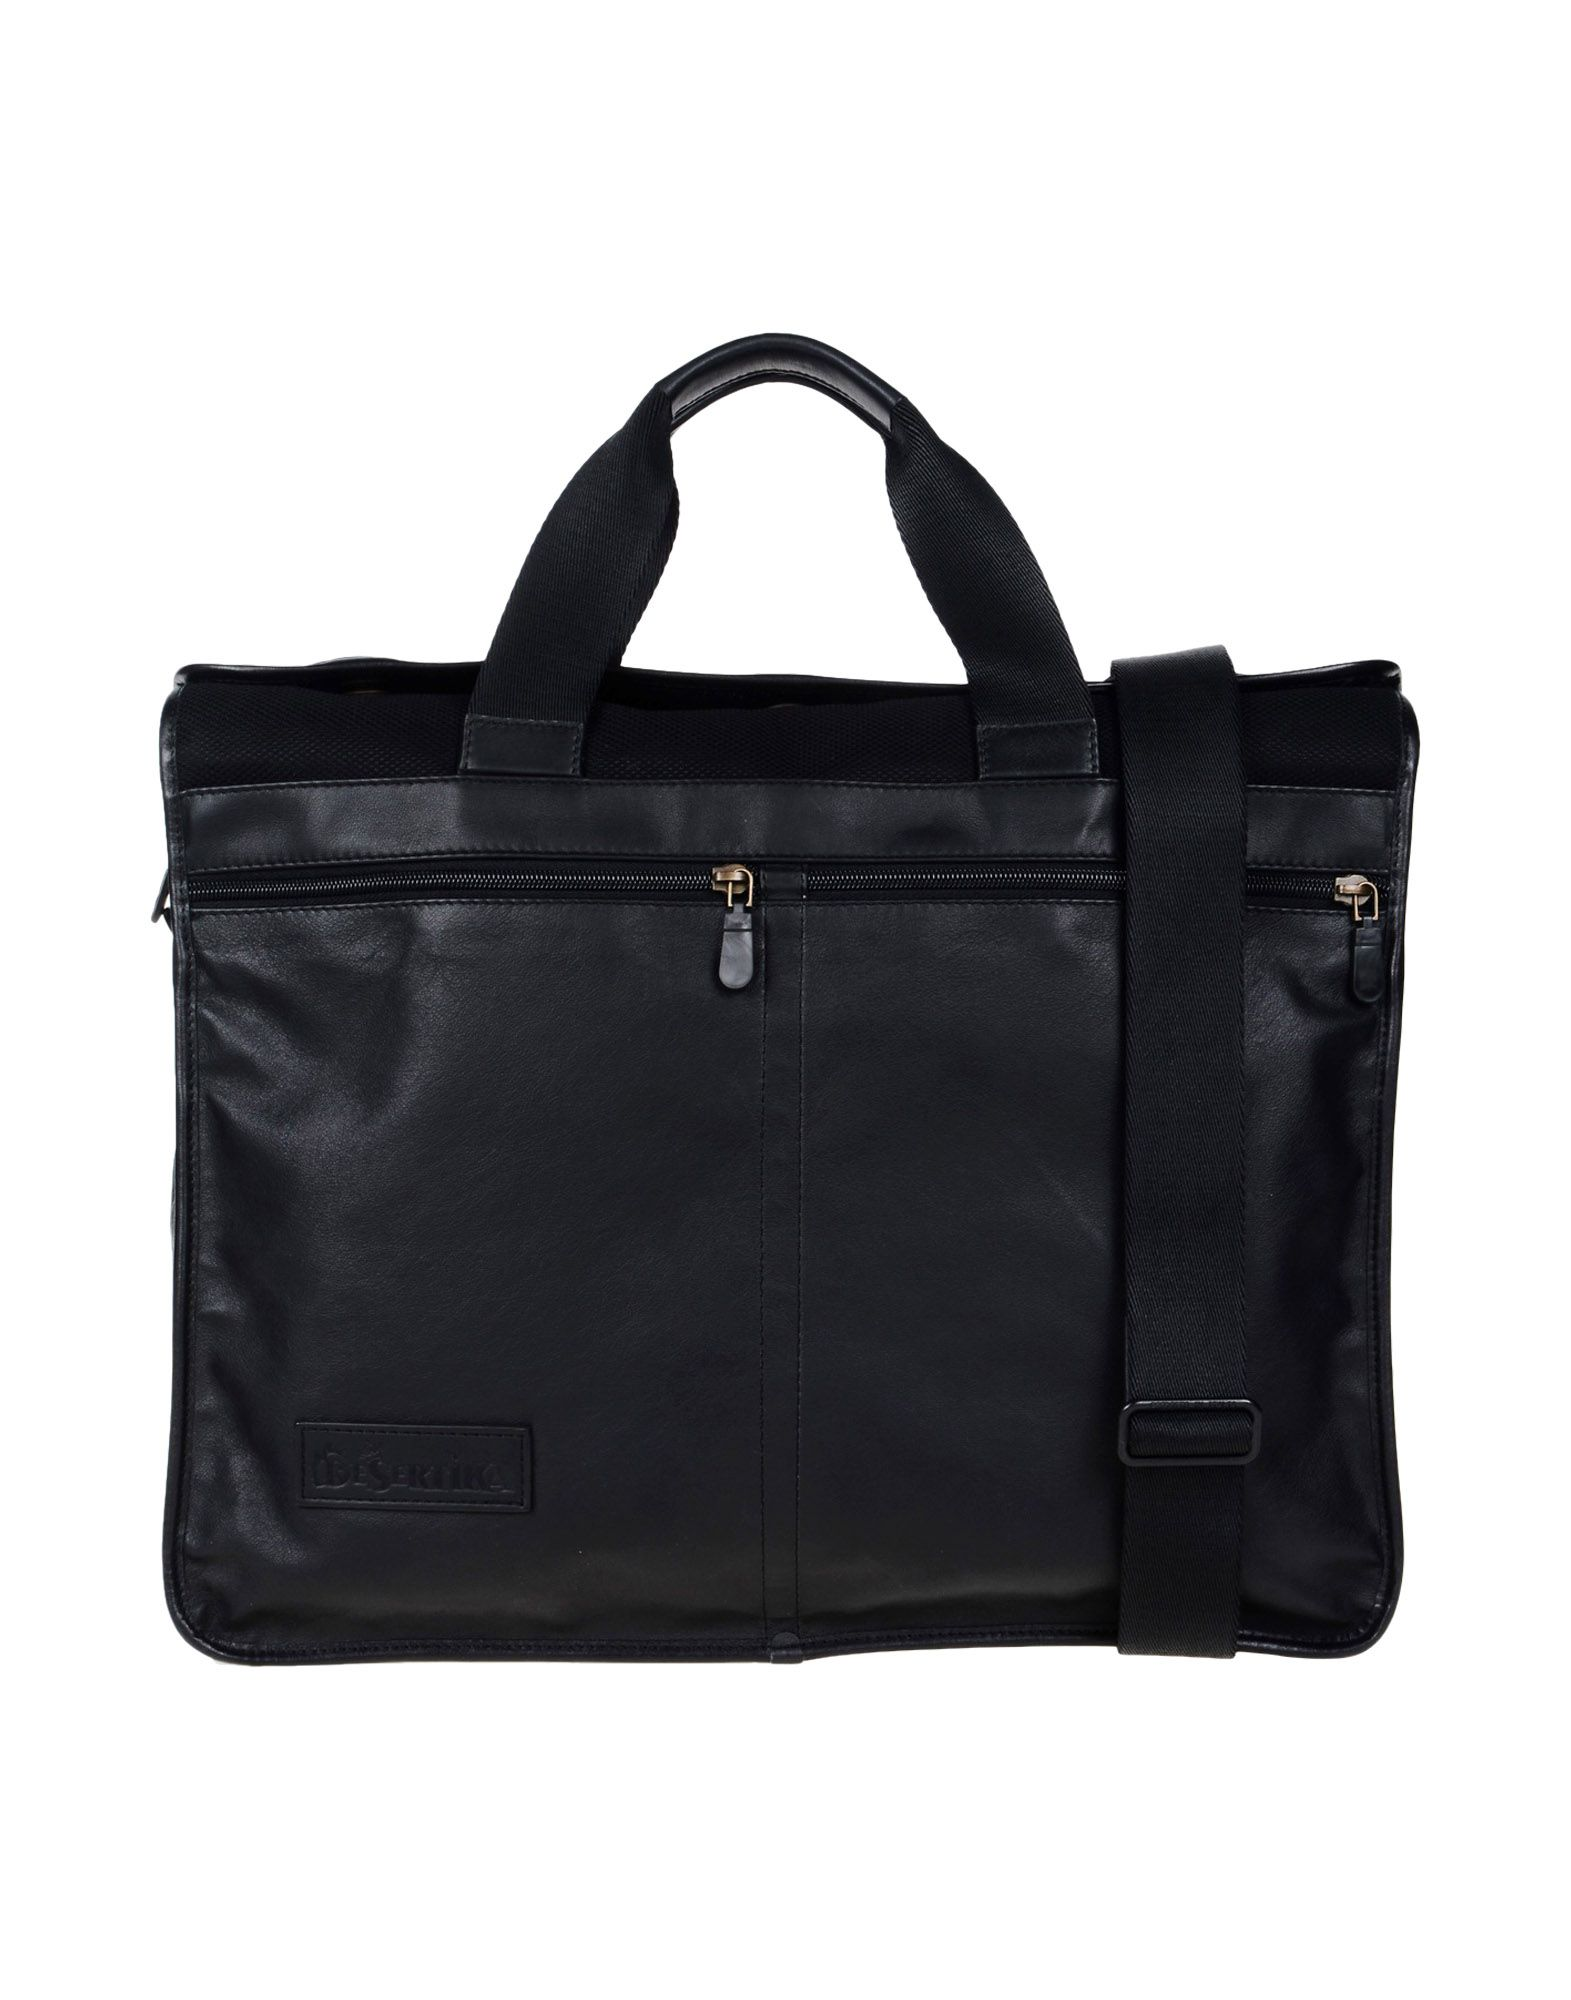 DESERTIKA Work Bag in Black